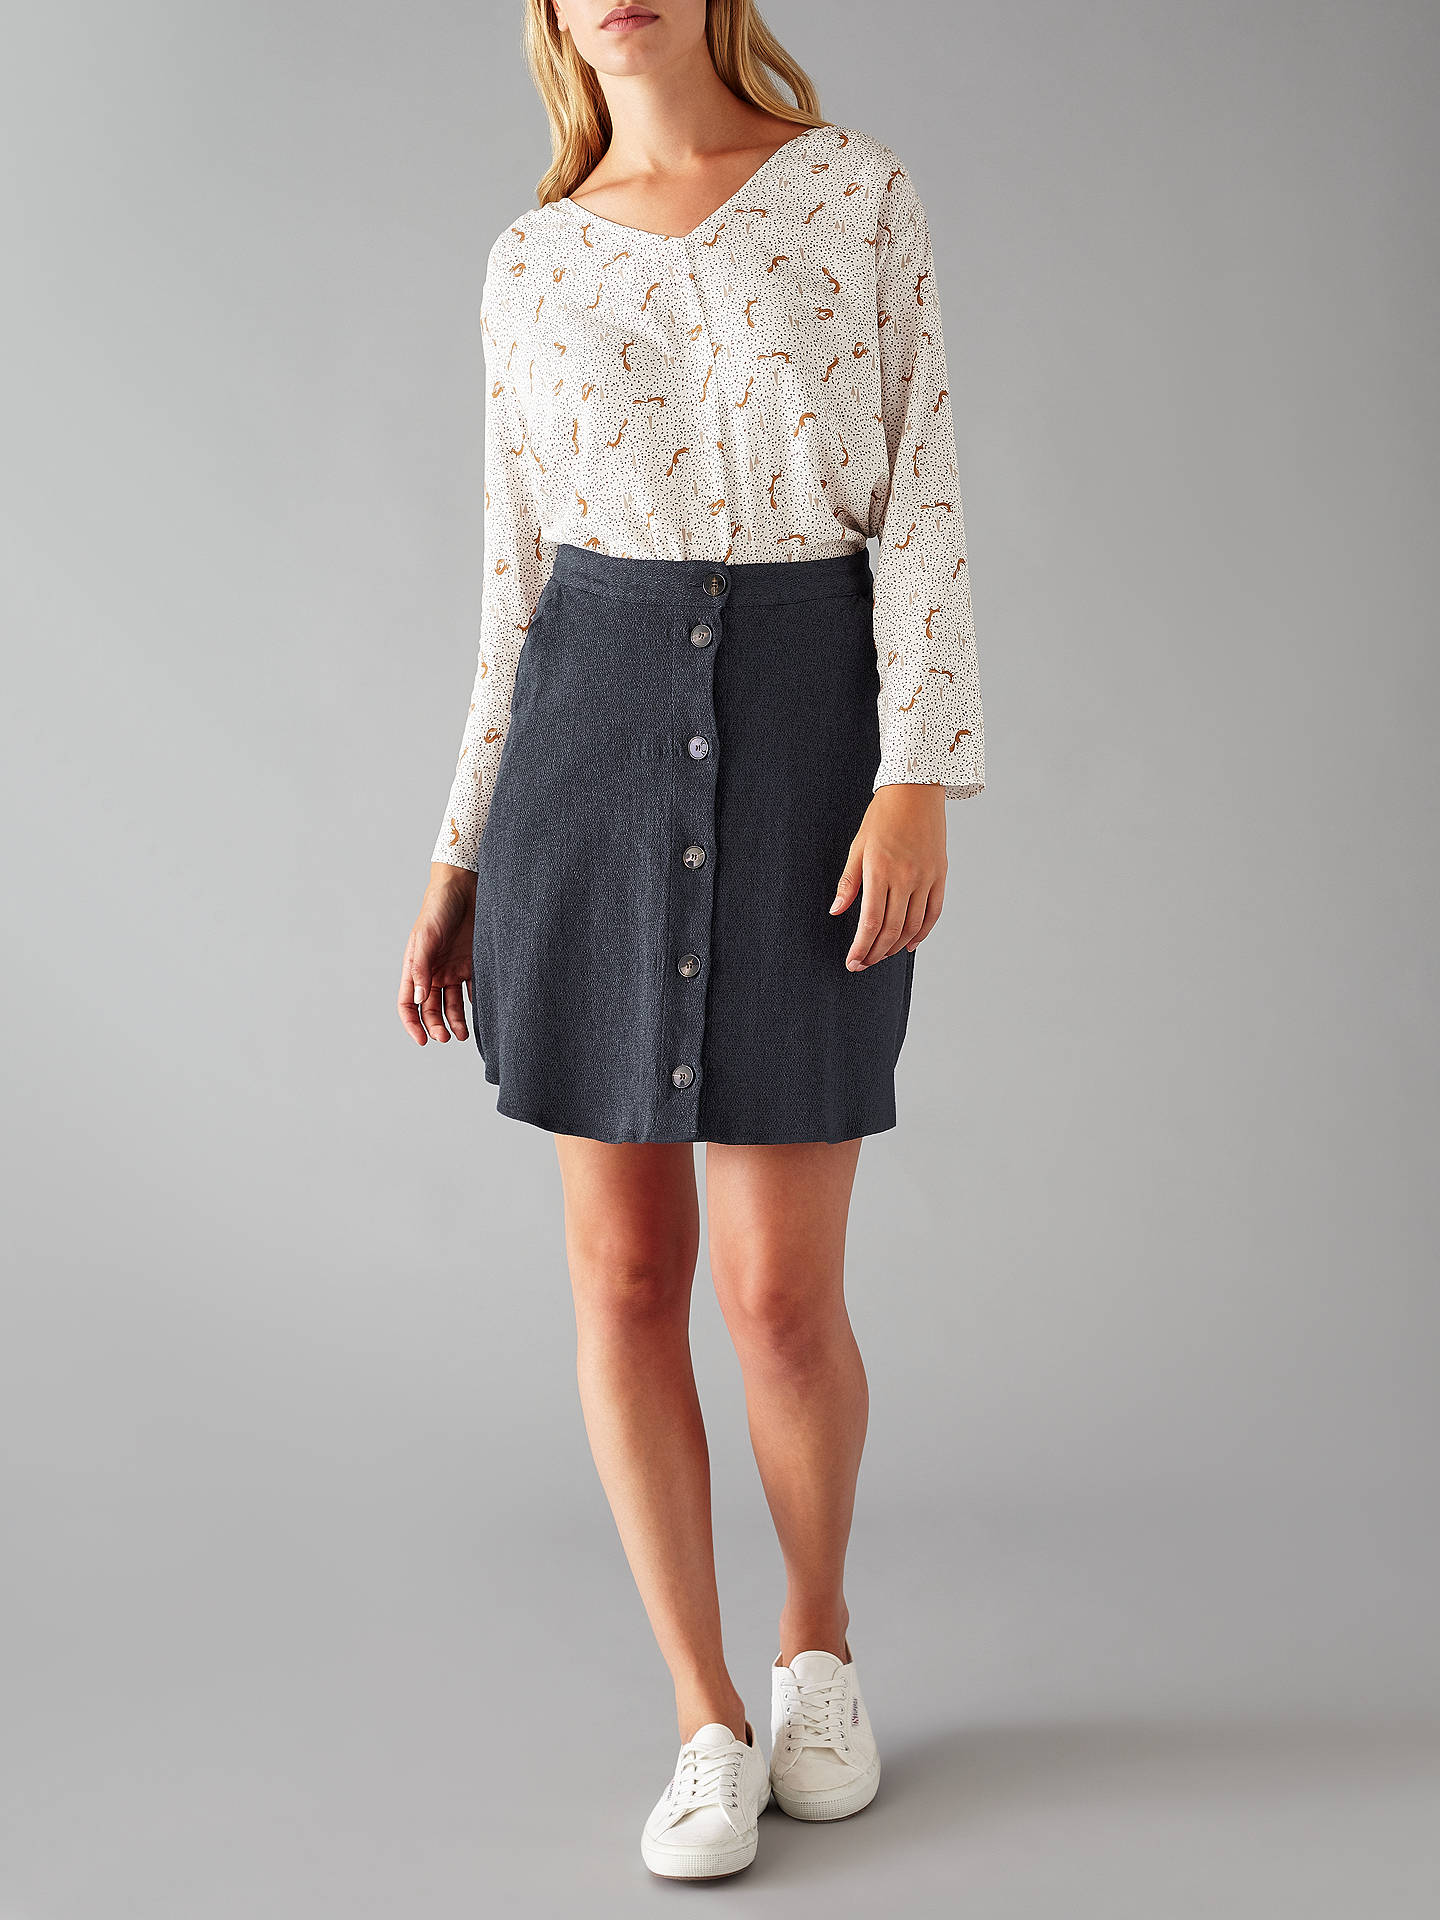 Harris Wilson Viveka Skirt, Marine at John Lewis & Partners